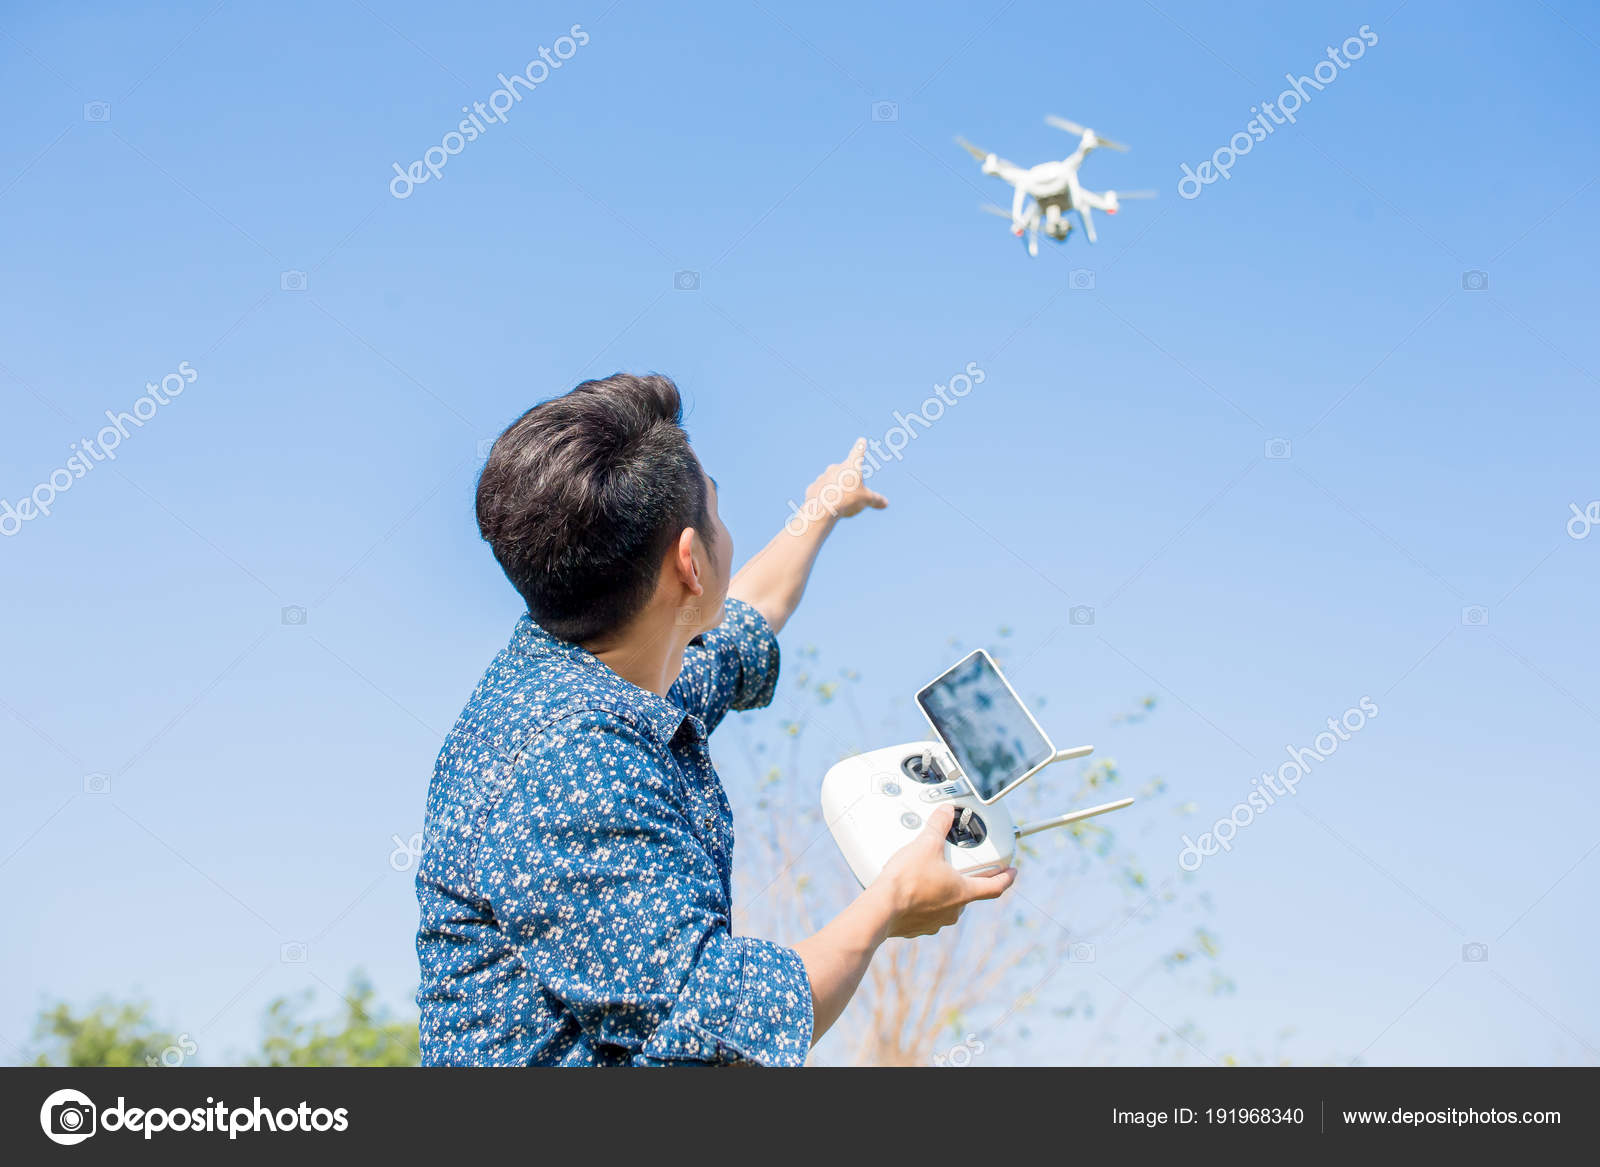 drone with camera buy